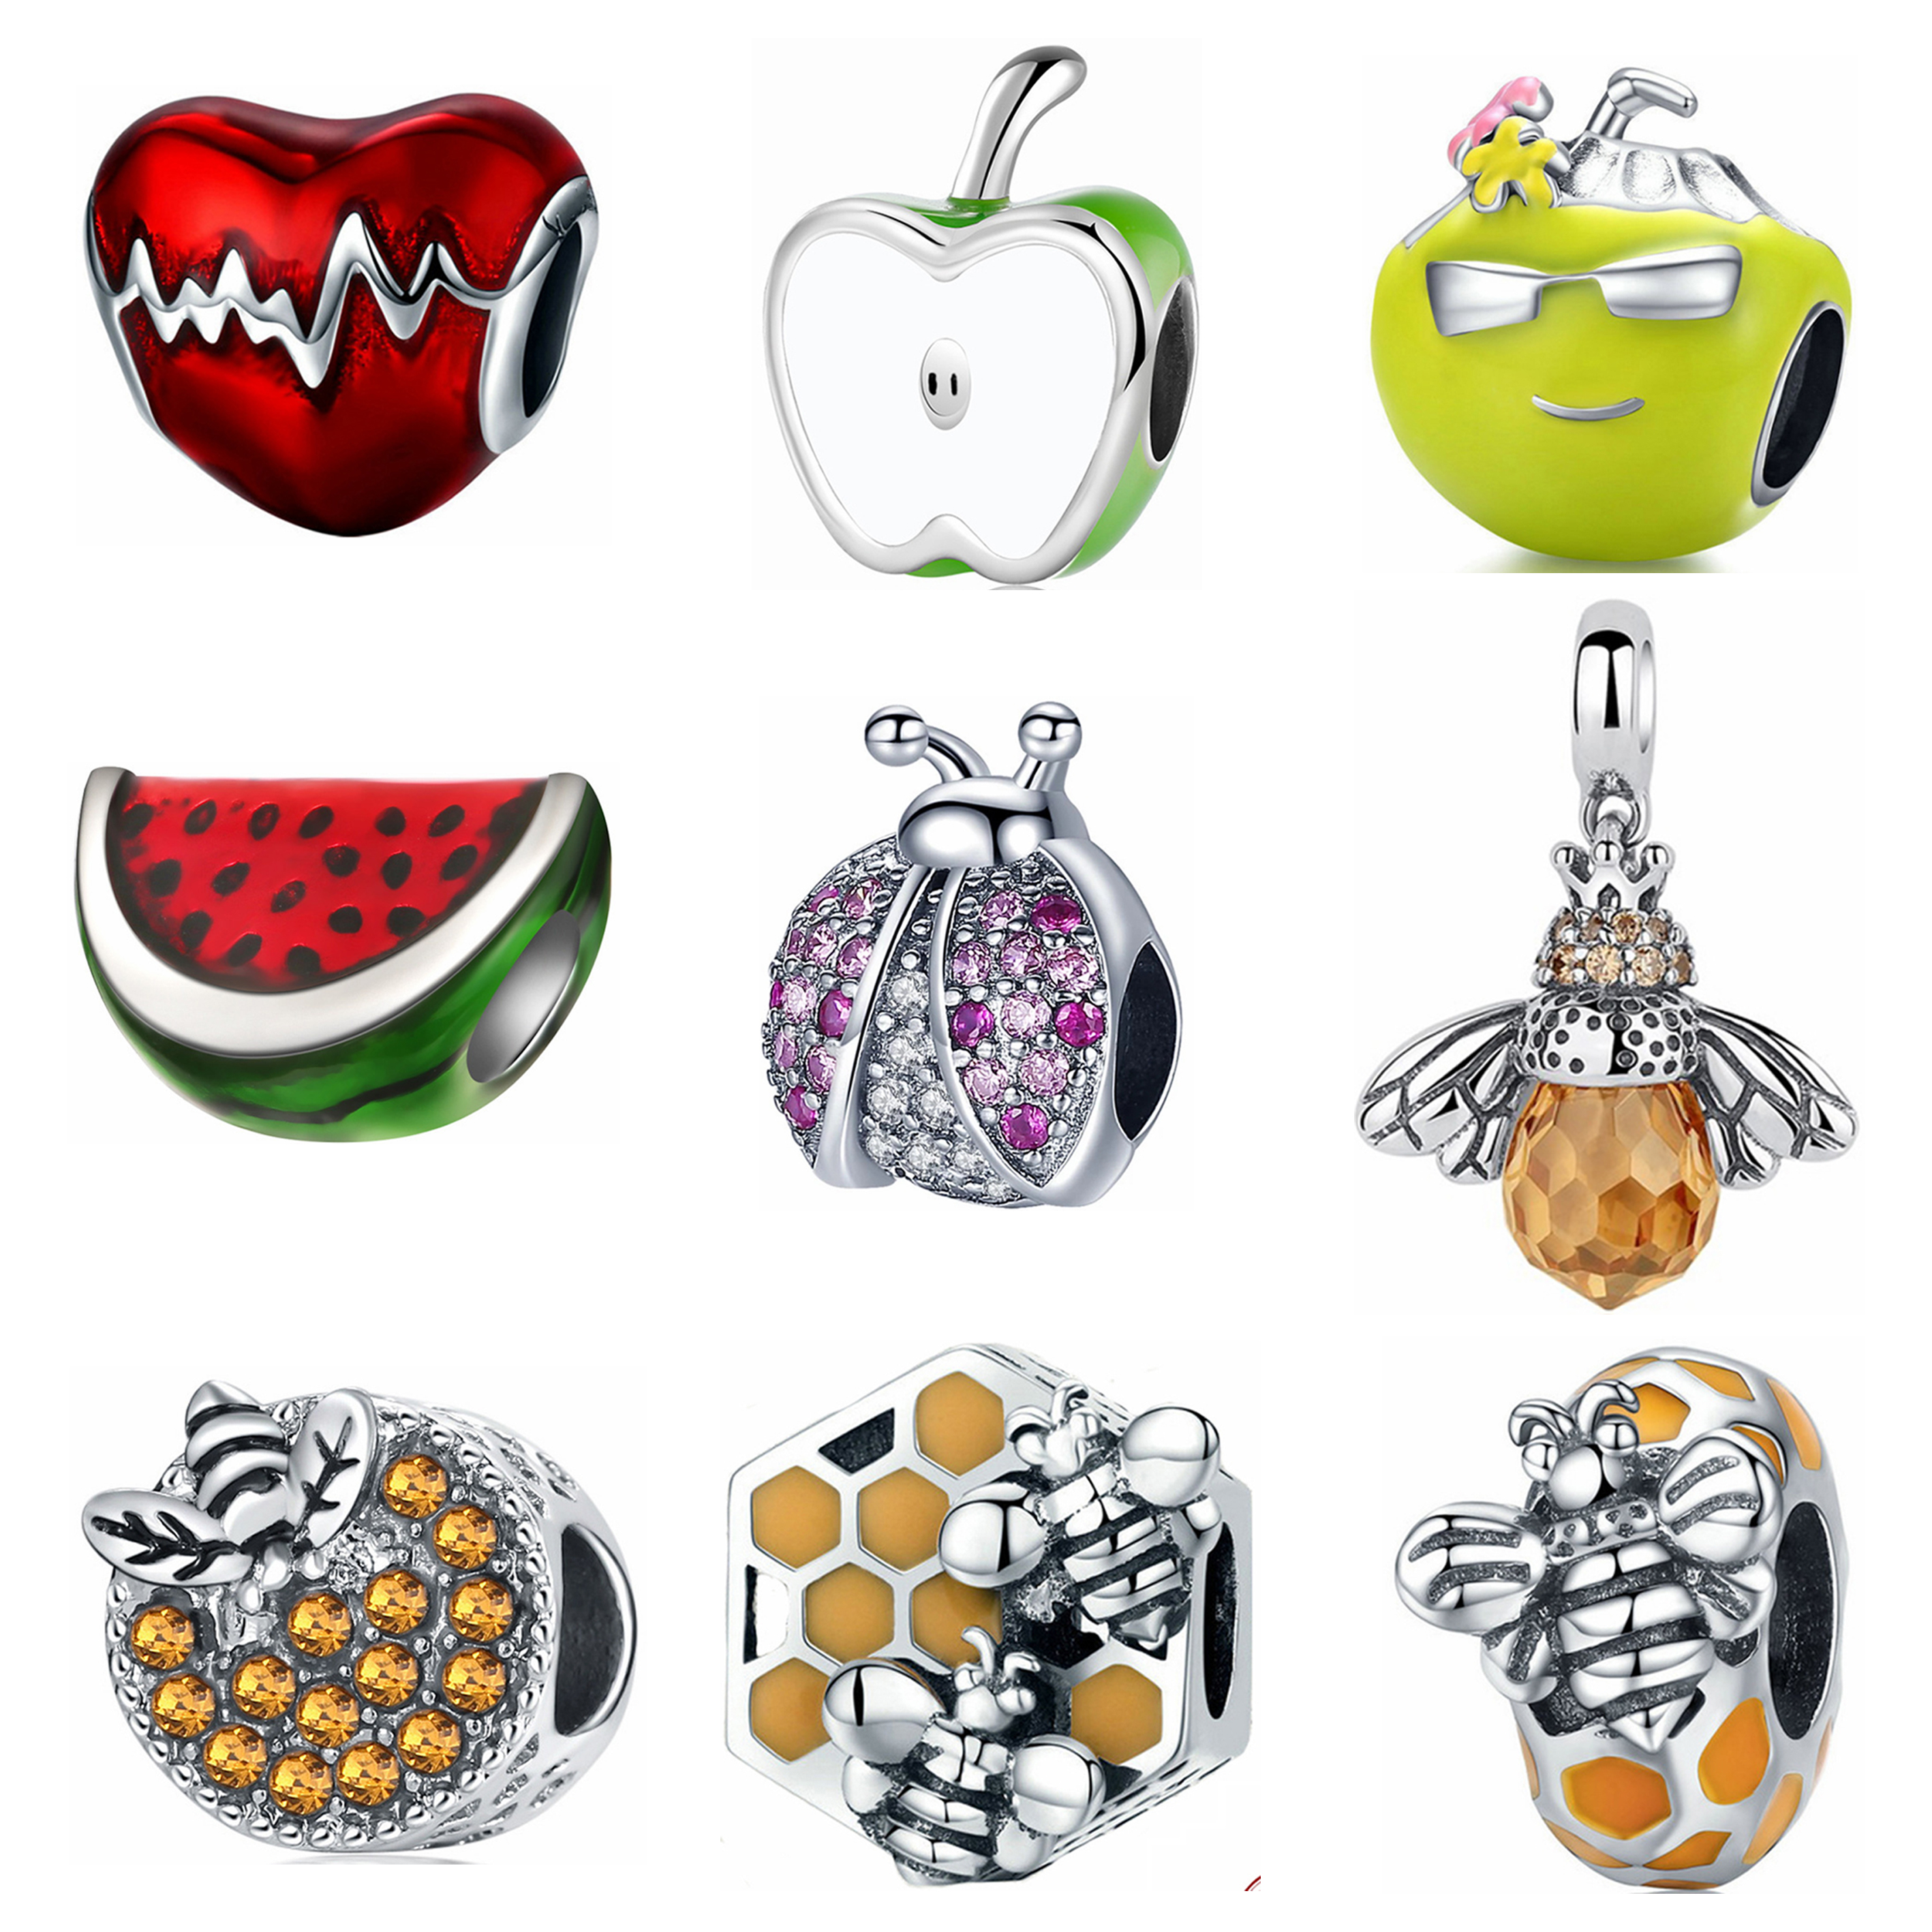 New 92 Multiple Styles Charm Beads Fit Pandora Charms 925 Sterling Silver Bangles Making Women European American DIY Jewelry